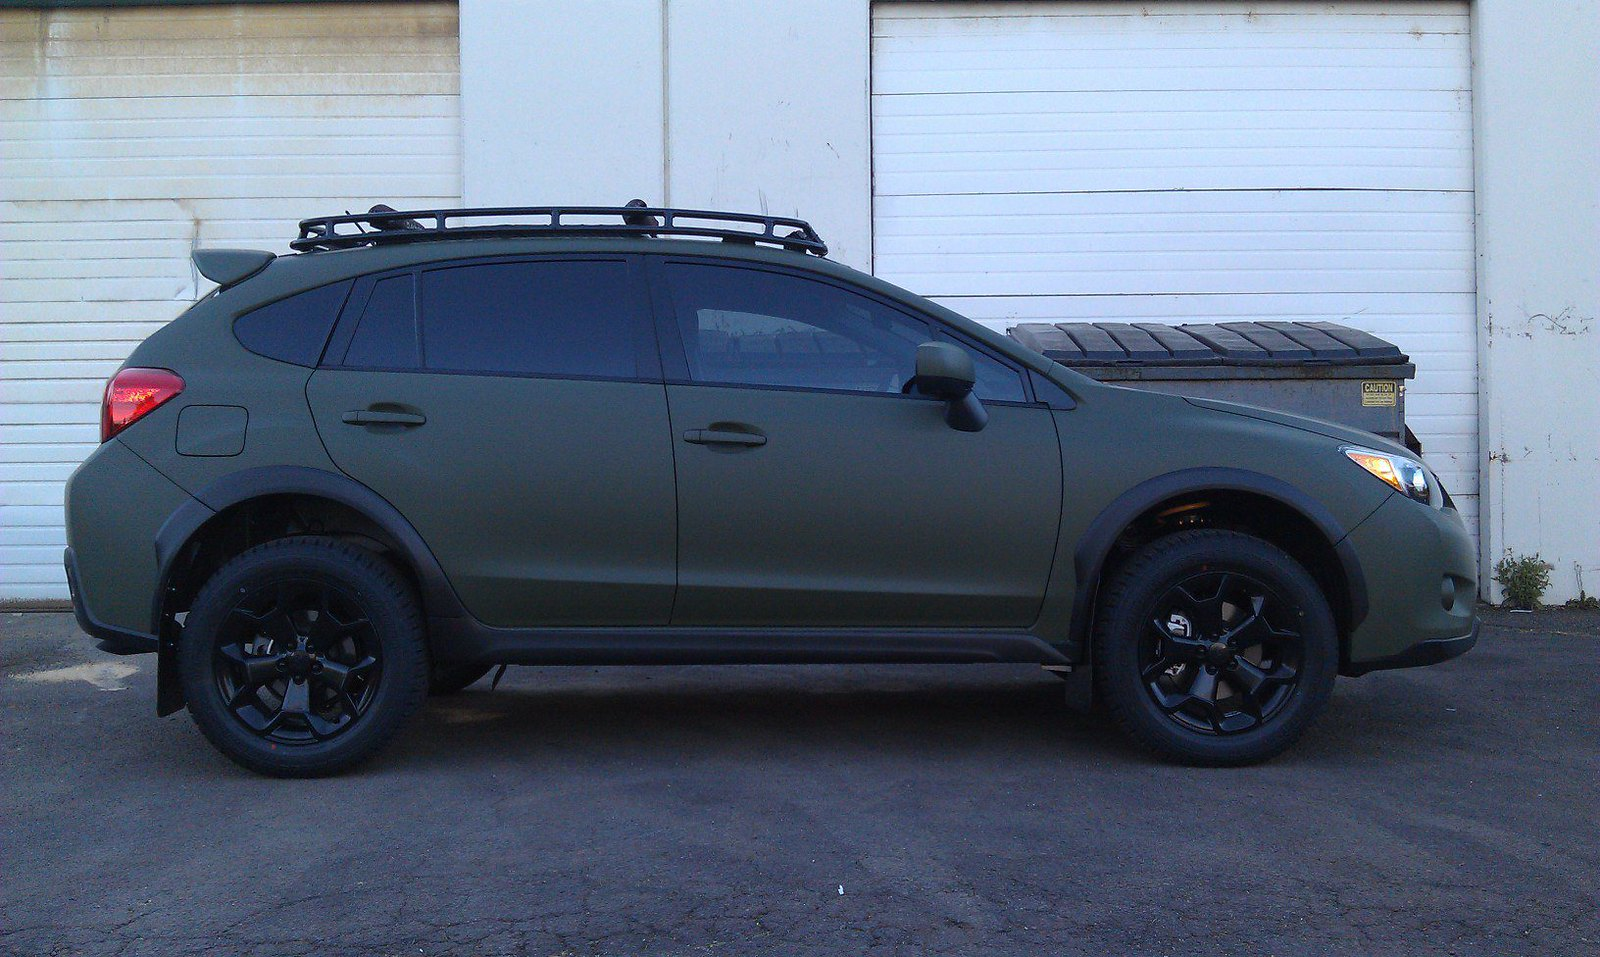 awesome custom crosstrek club crosstrek subaru xv. Black Bedroom Furniture Sets. Home Design Ideas